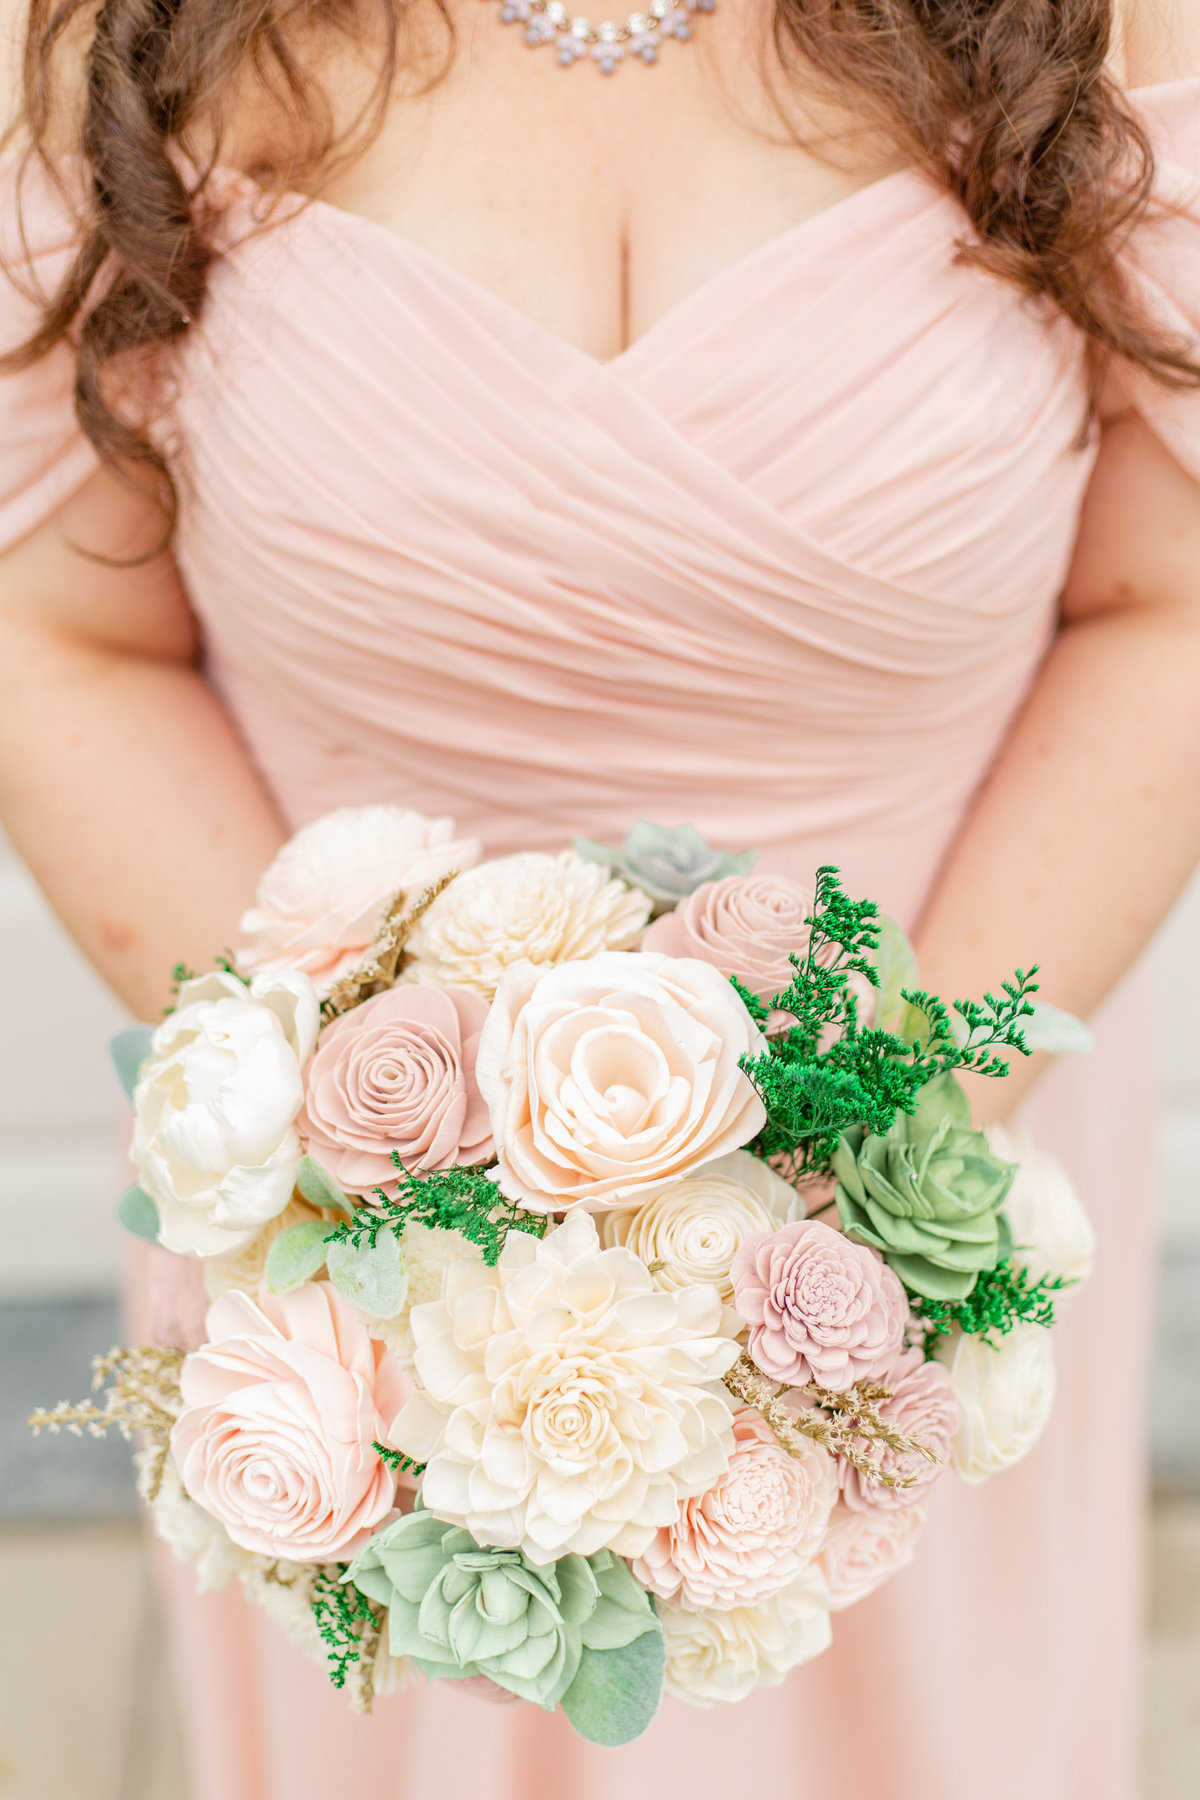 Bridesmaid blush gown styled with off the shoulder sleeves holds wooden green, blush and cream wedding bouquet